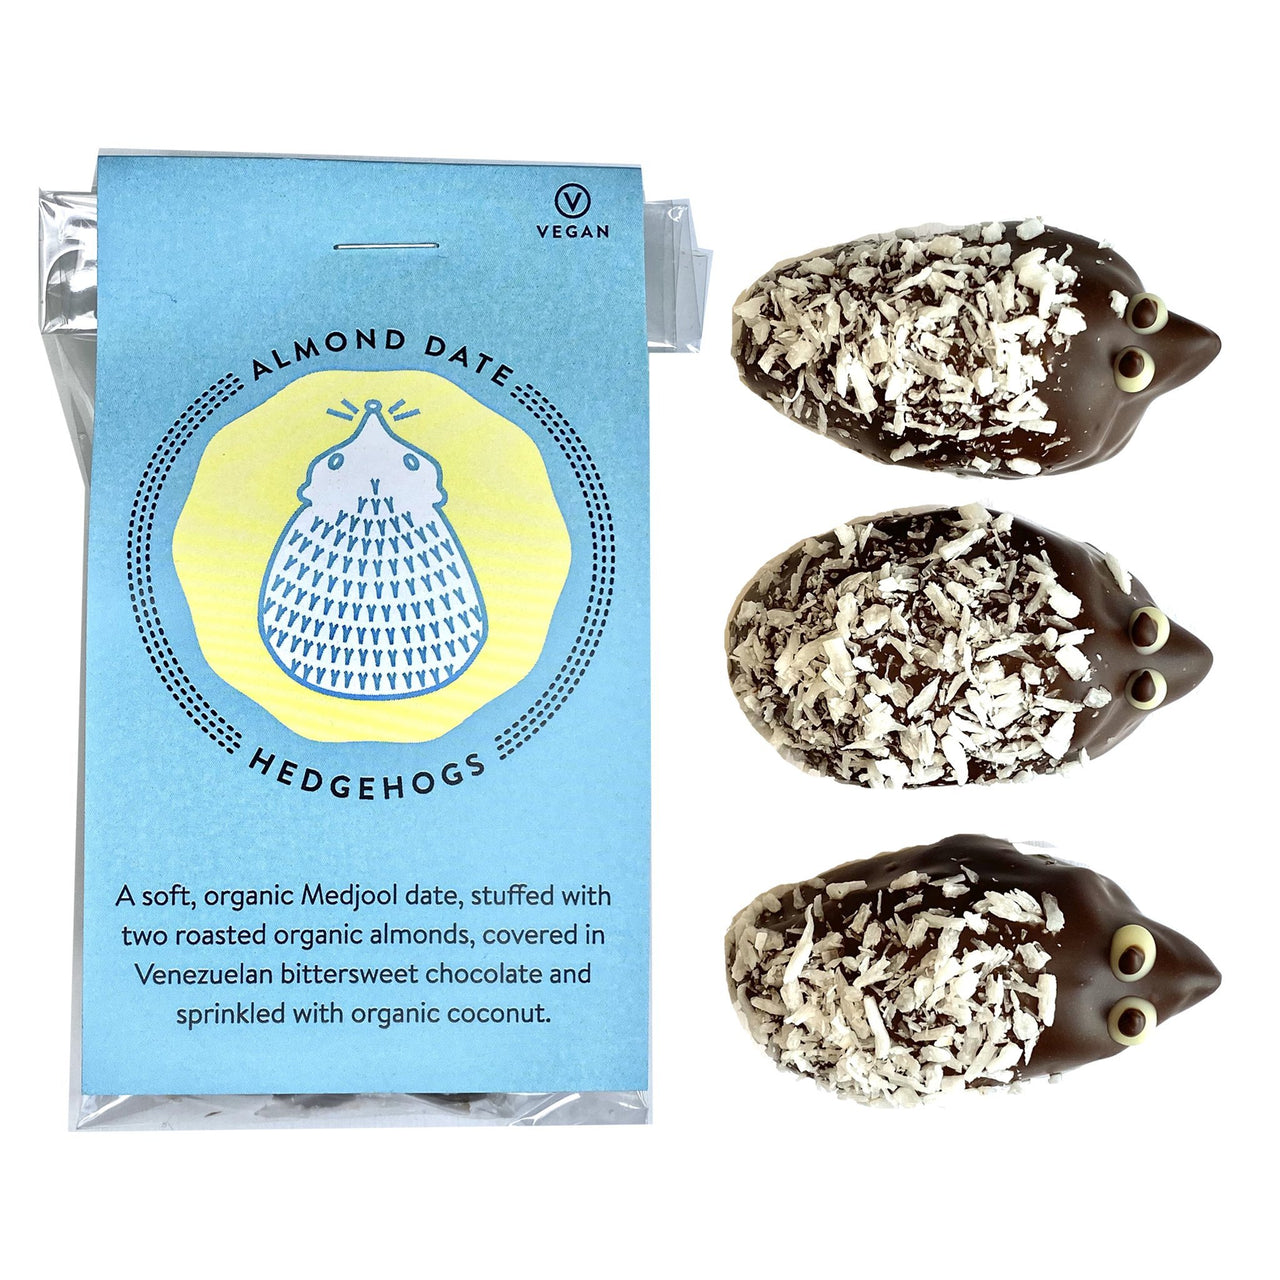 Almond Date Chocolate Hedgehogs-Vegan